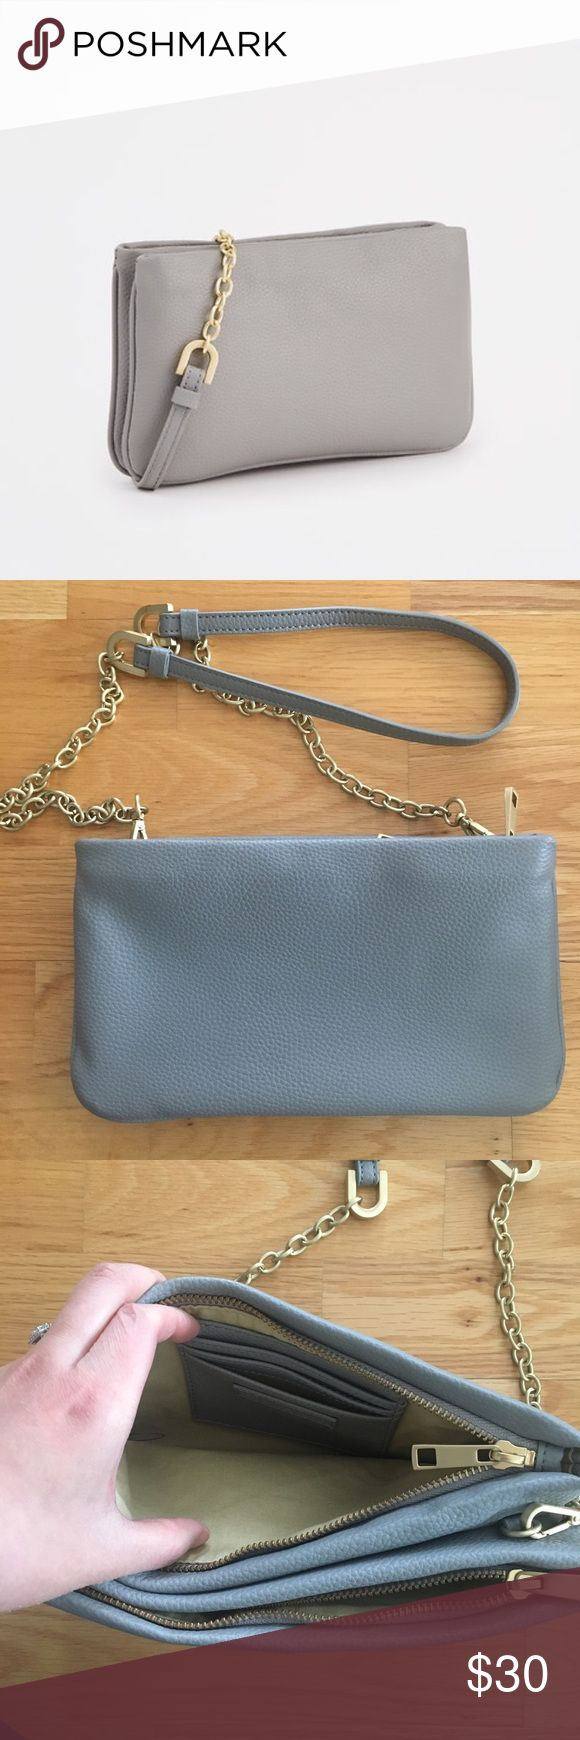 Ann Taylor Double Gusset Crossbody Bag In excellent condition. 2 compartments, 3 card slotz No rips, stains or tears to note and clean interior. Additional pictures shown from my blog for styling purposes only. Bunny bag charm is not included. Ann Taylor Bags Crossbody Bags